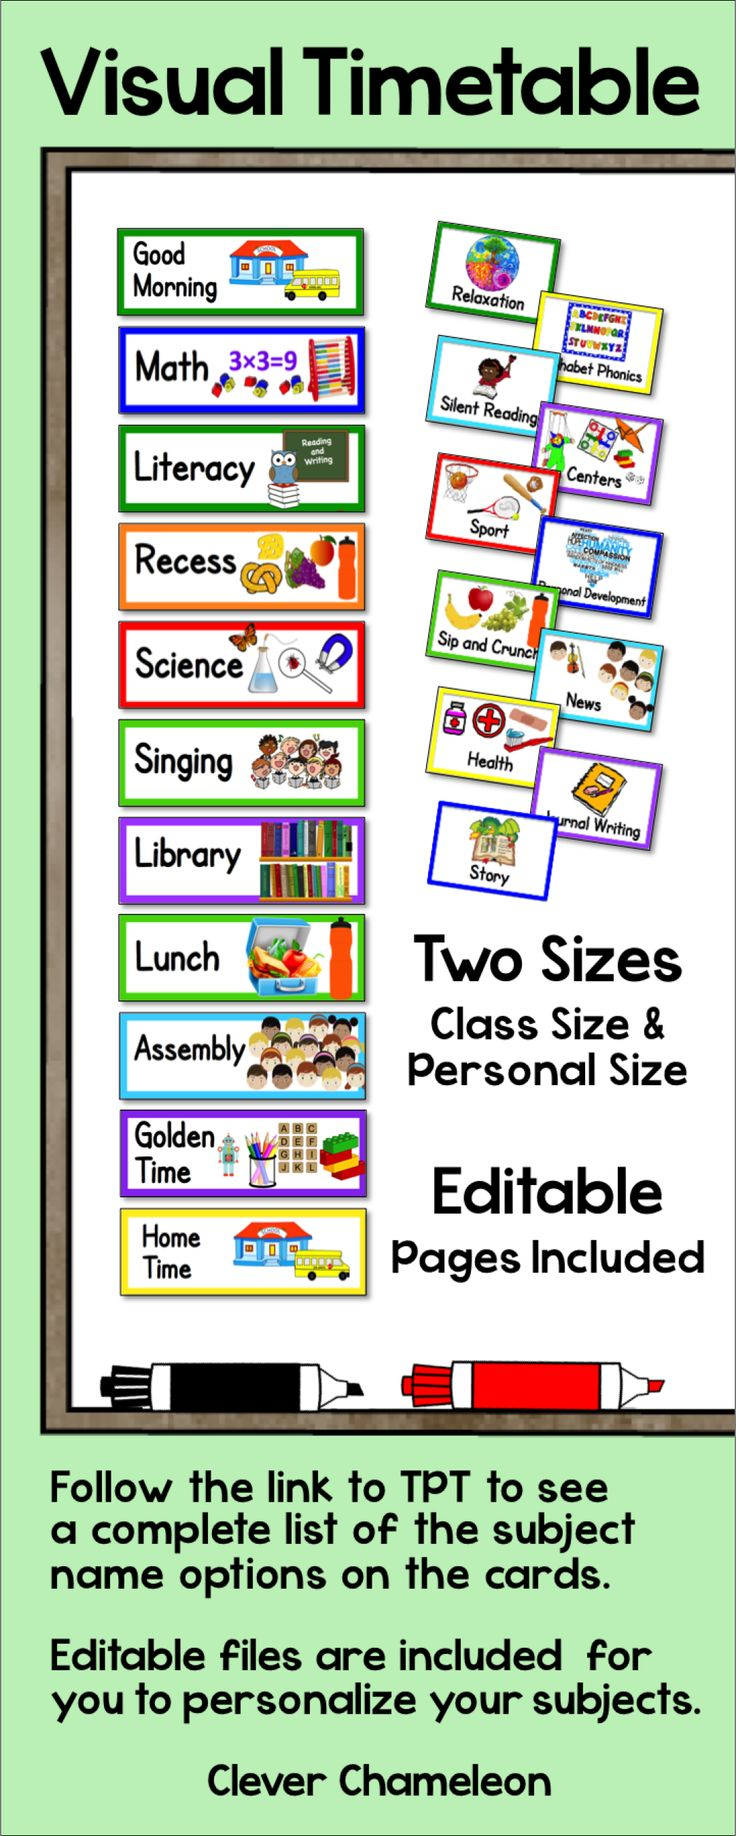 Visual Timetable in Class Size and Individual Size. Editable files included. Available at Clever Chameleon TPT